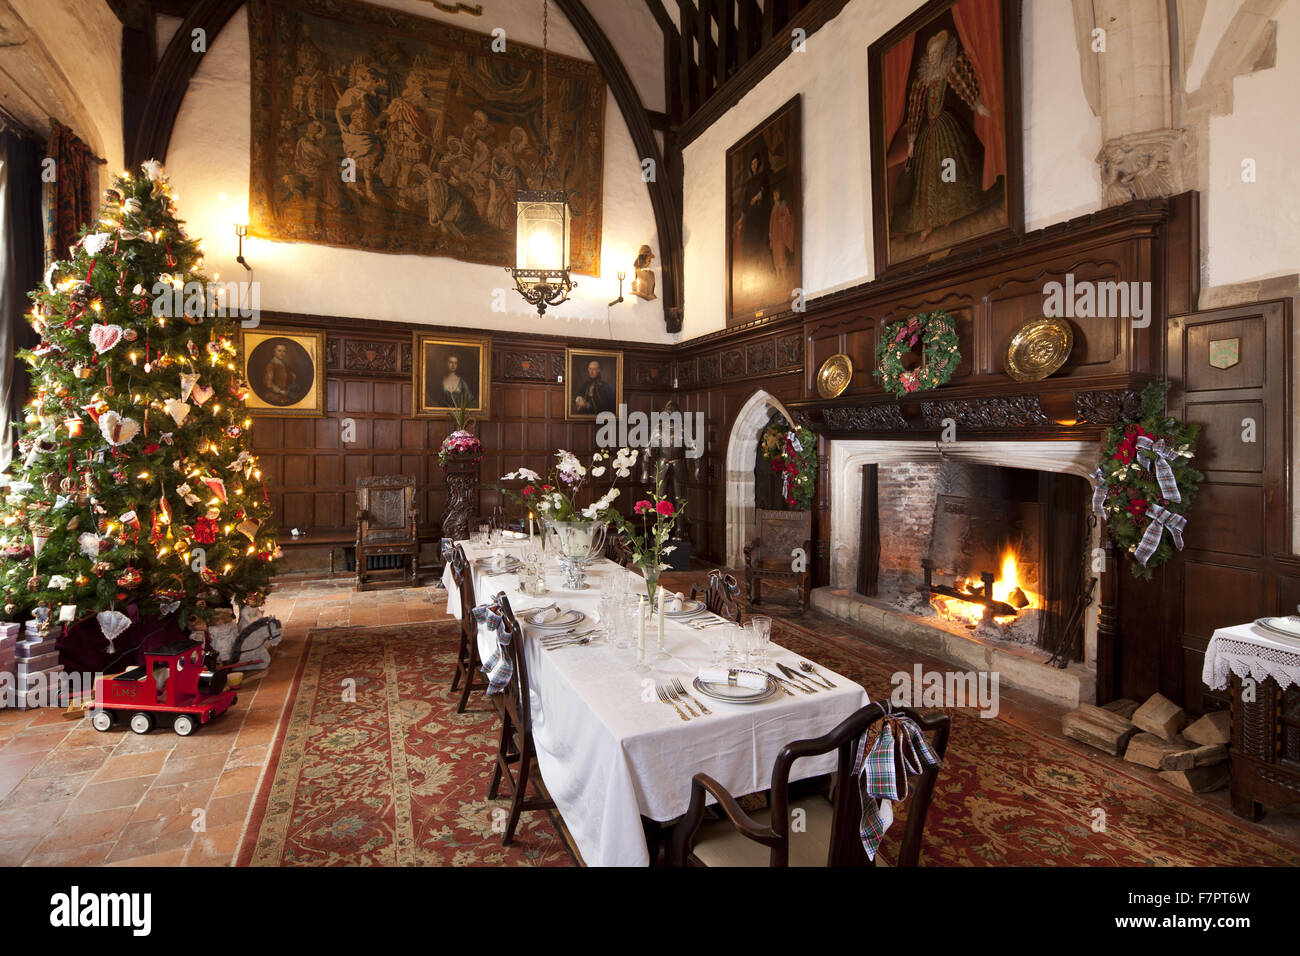 Christmas At Ightham Mote Kent Ightham Mote Is A